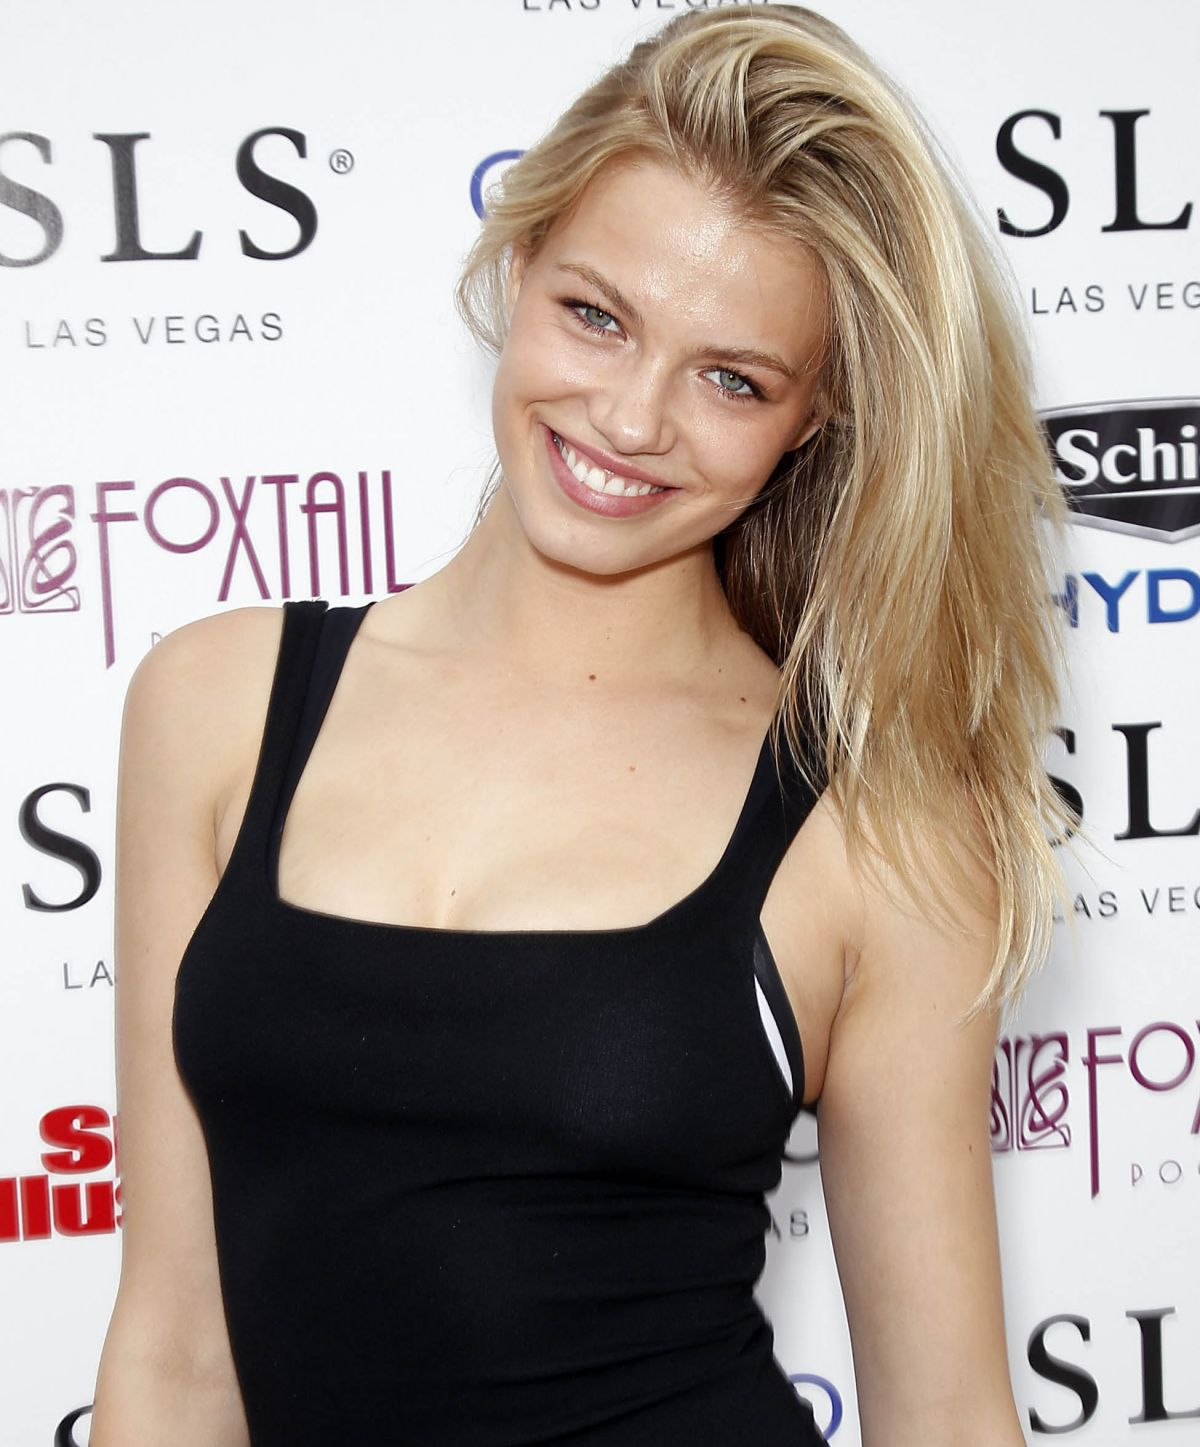 Hailey Clauson 8 Hottest Photos Of Sports Illustrated: HAILEY CLAUSON At Sports Illustrated Fight Weekend Party